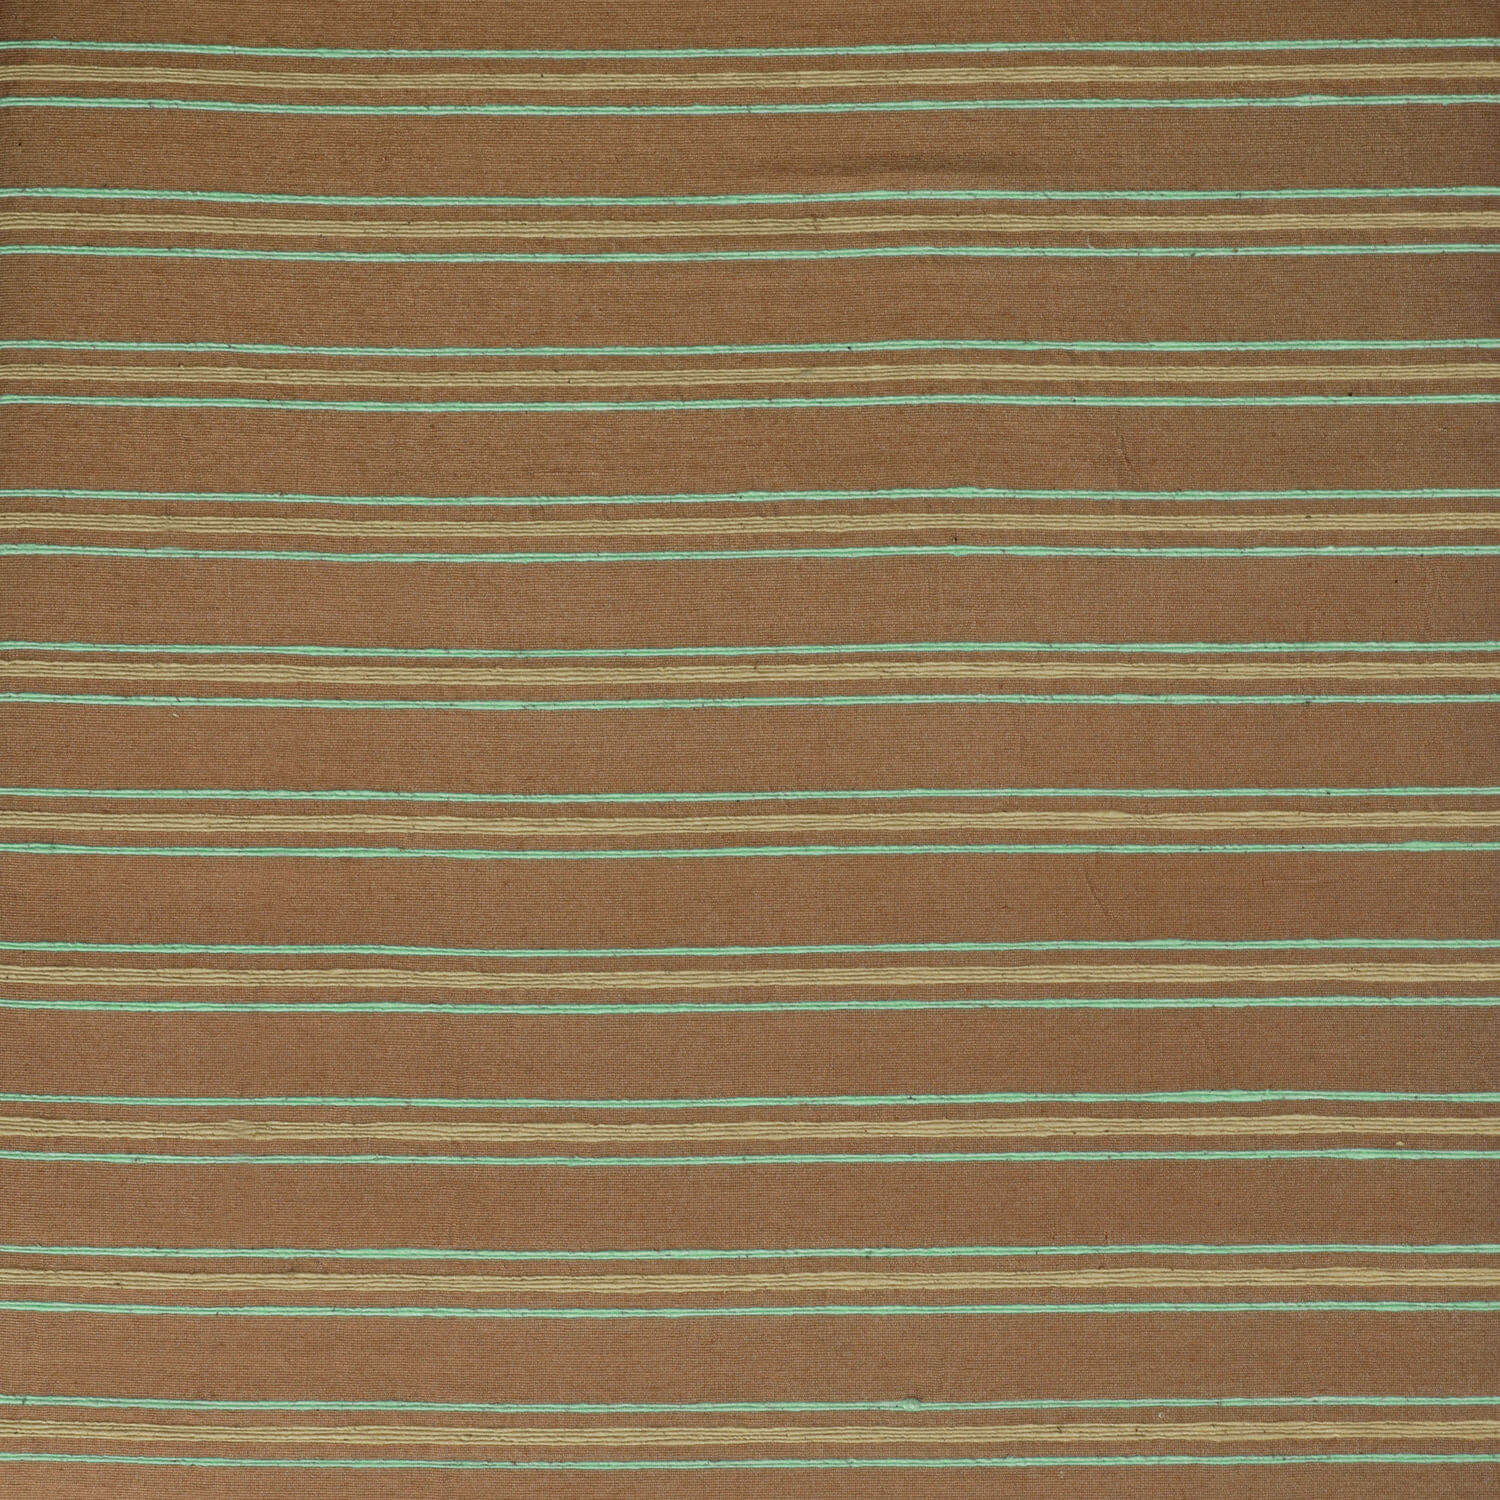 Mocha And Teal Casual Cotton Fabric